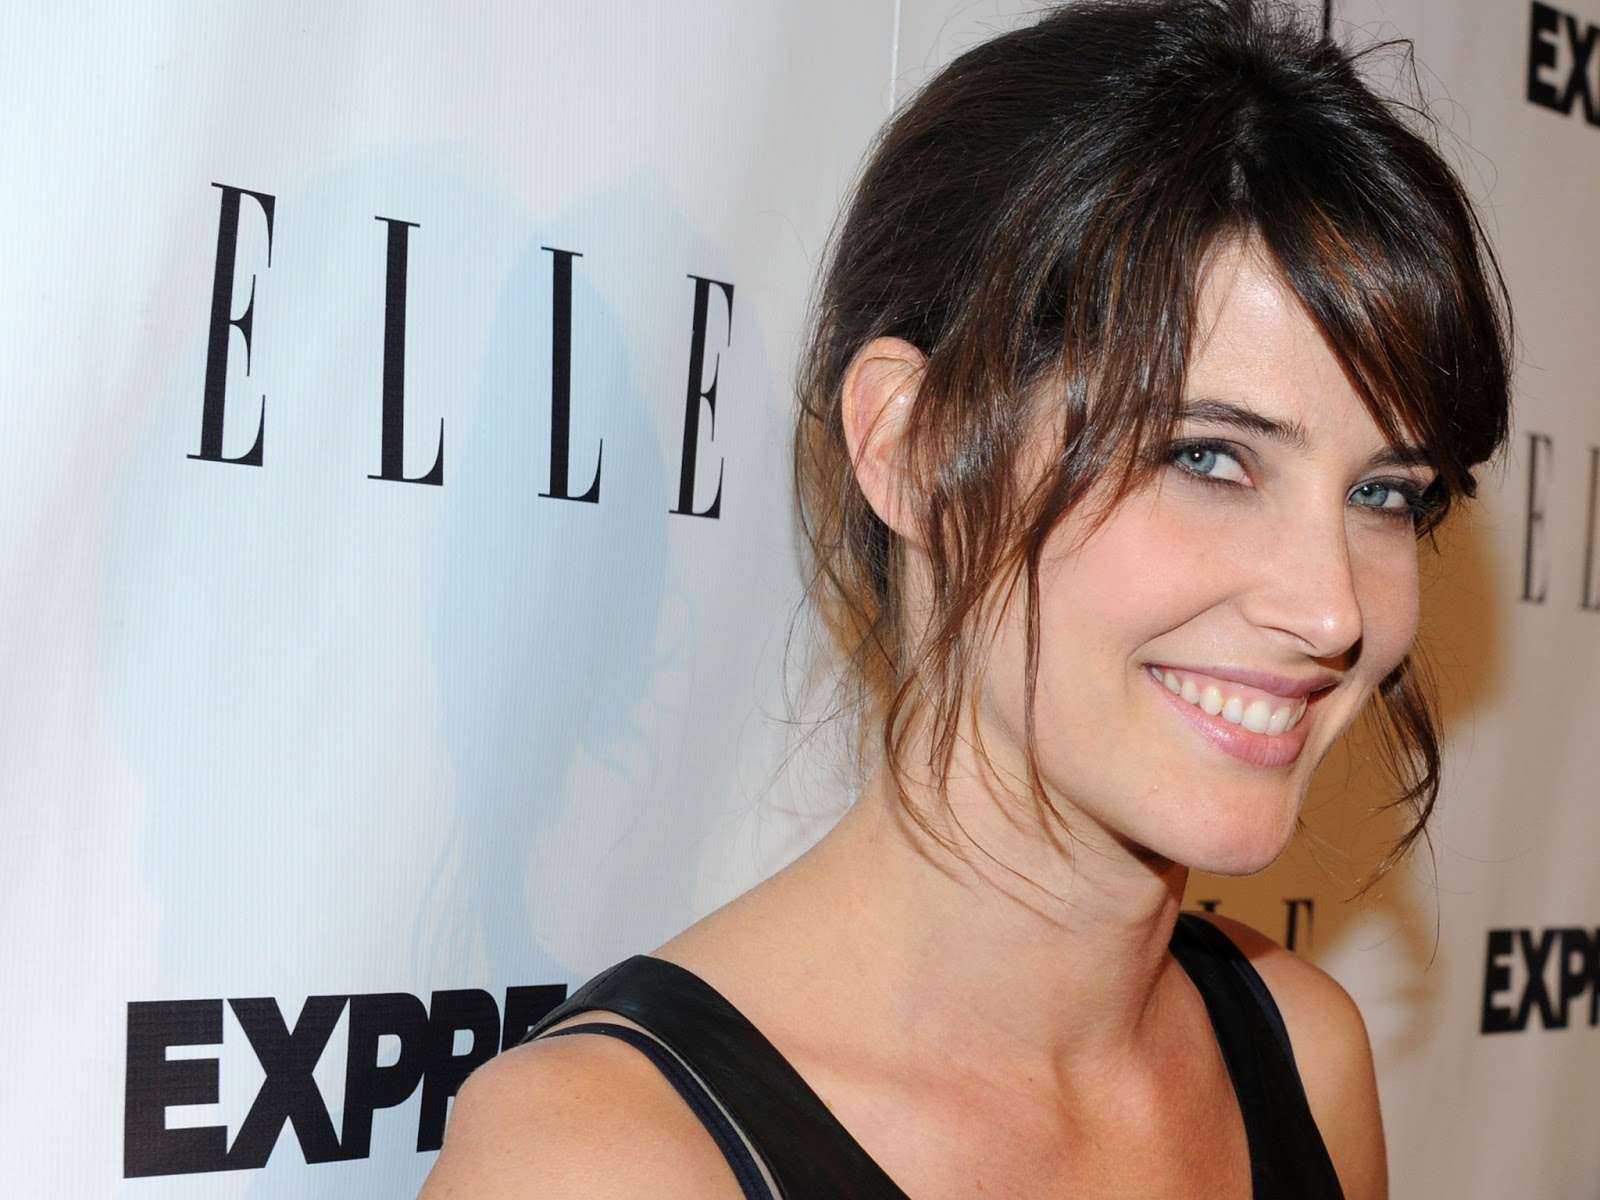 hd Cobie Smulders hot hd wallpapers Cobie Smulders hd wallpapers 1600x1200